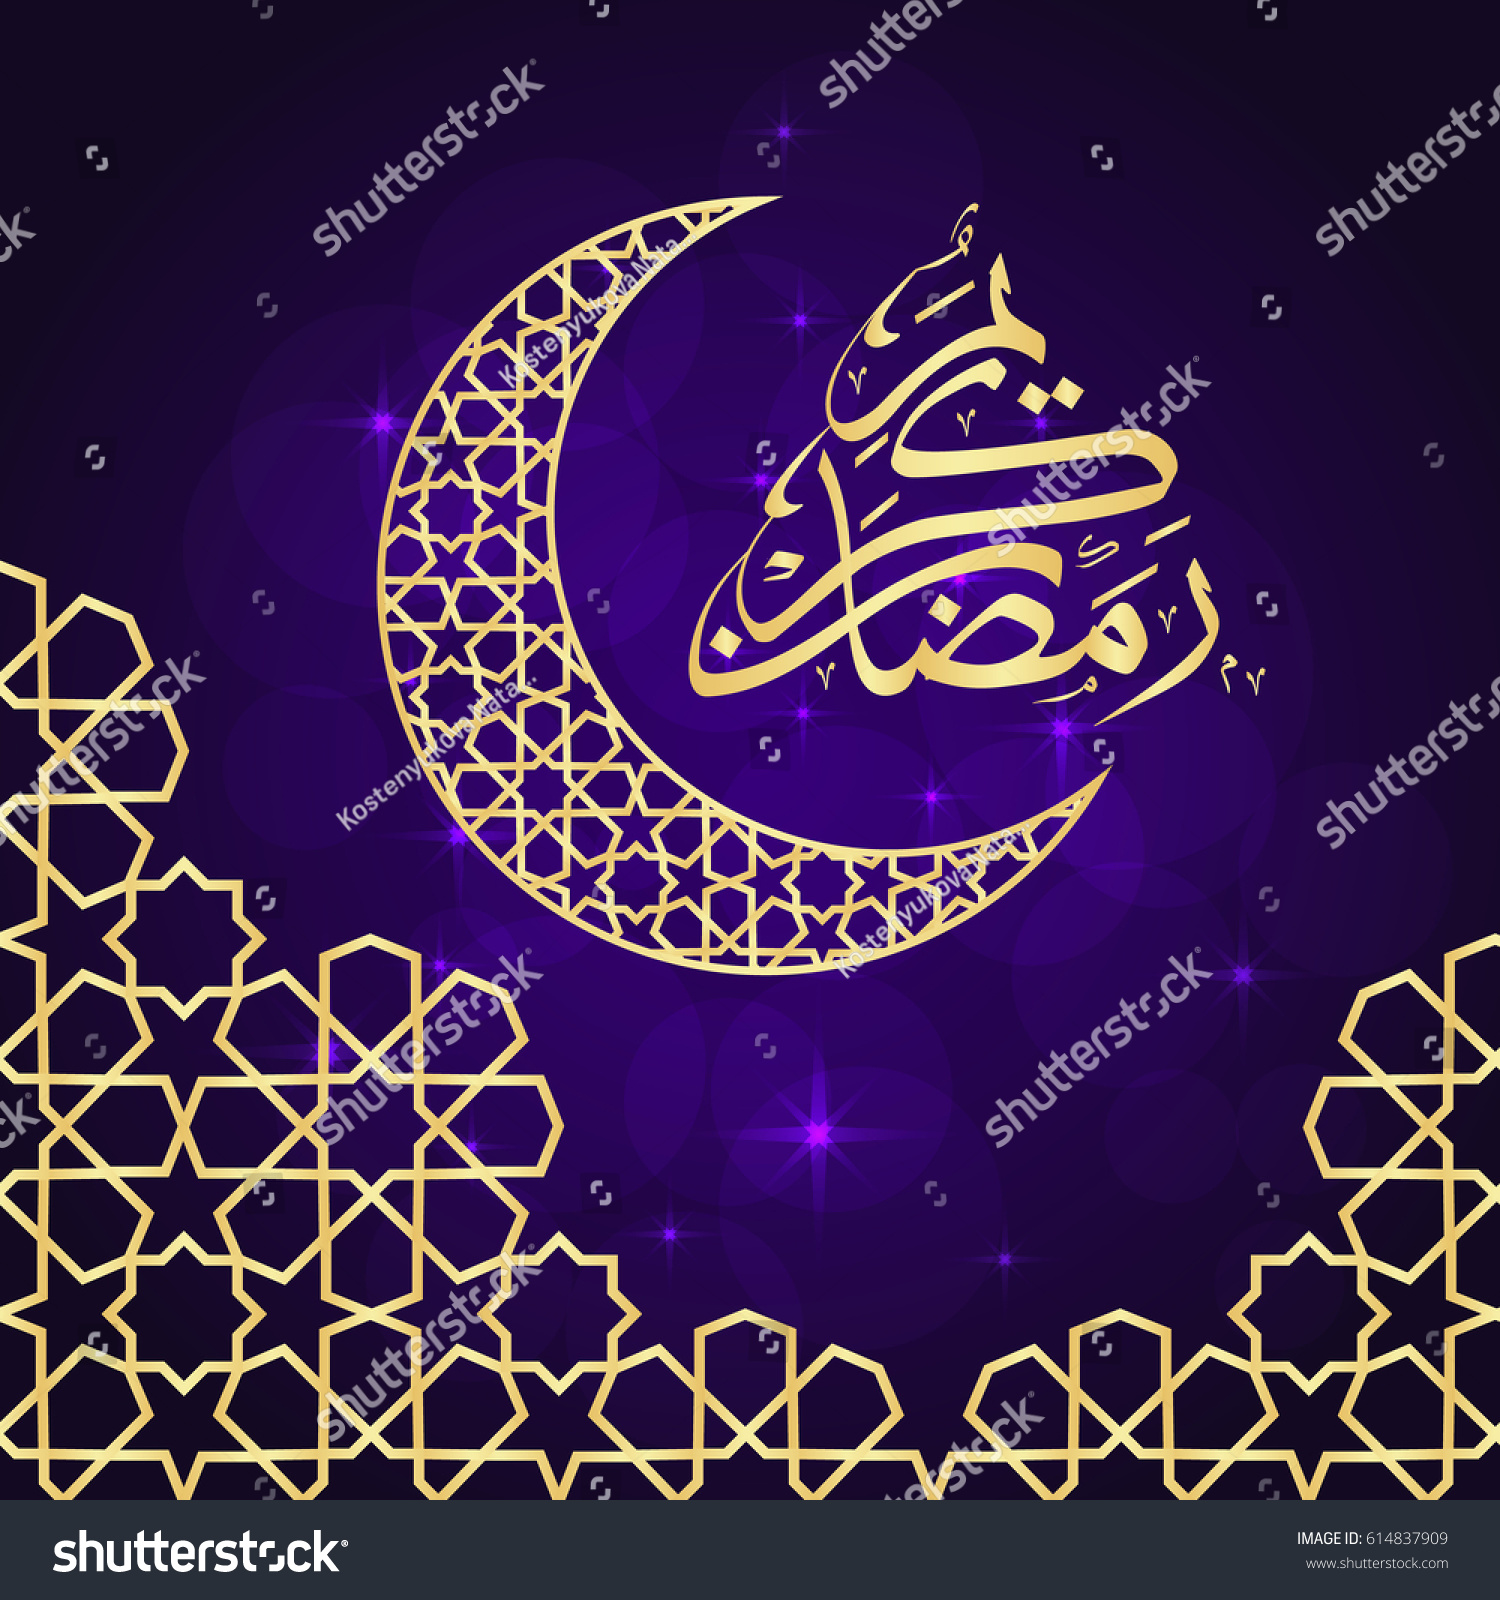 Ramadan Greeting Card On Violet Background Stock Vector 614837909